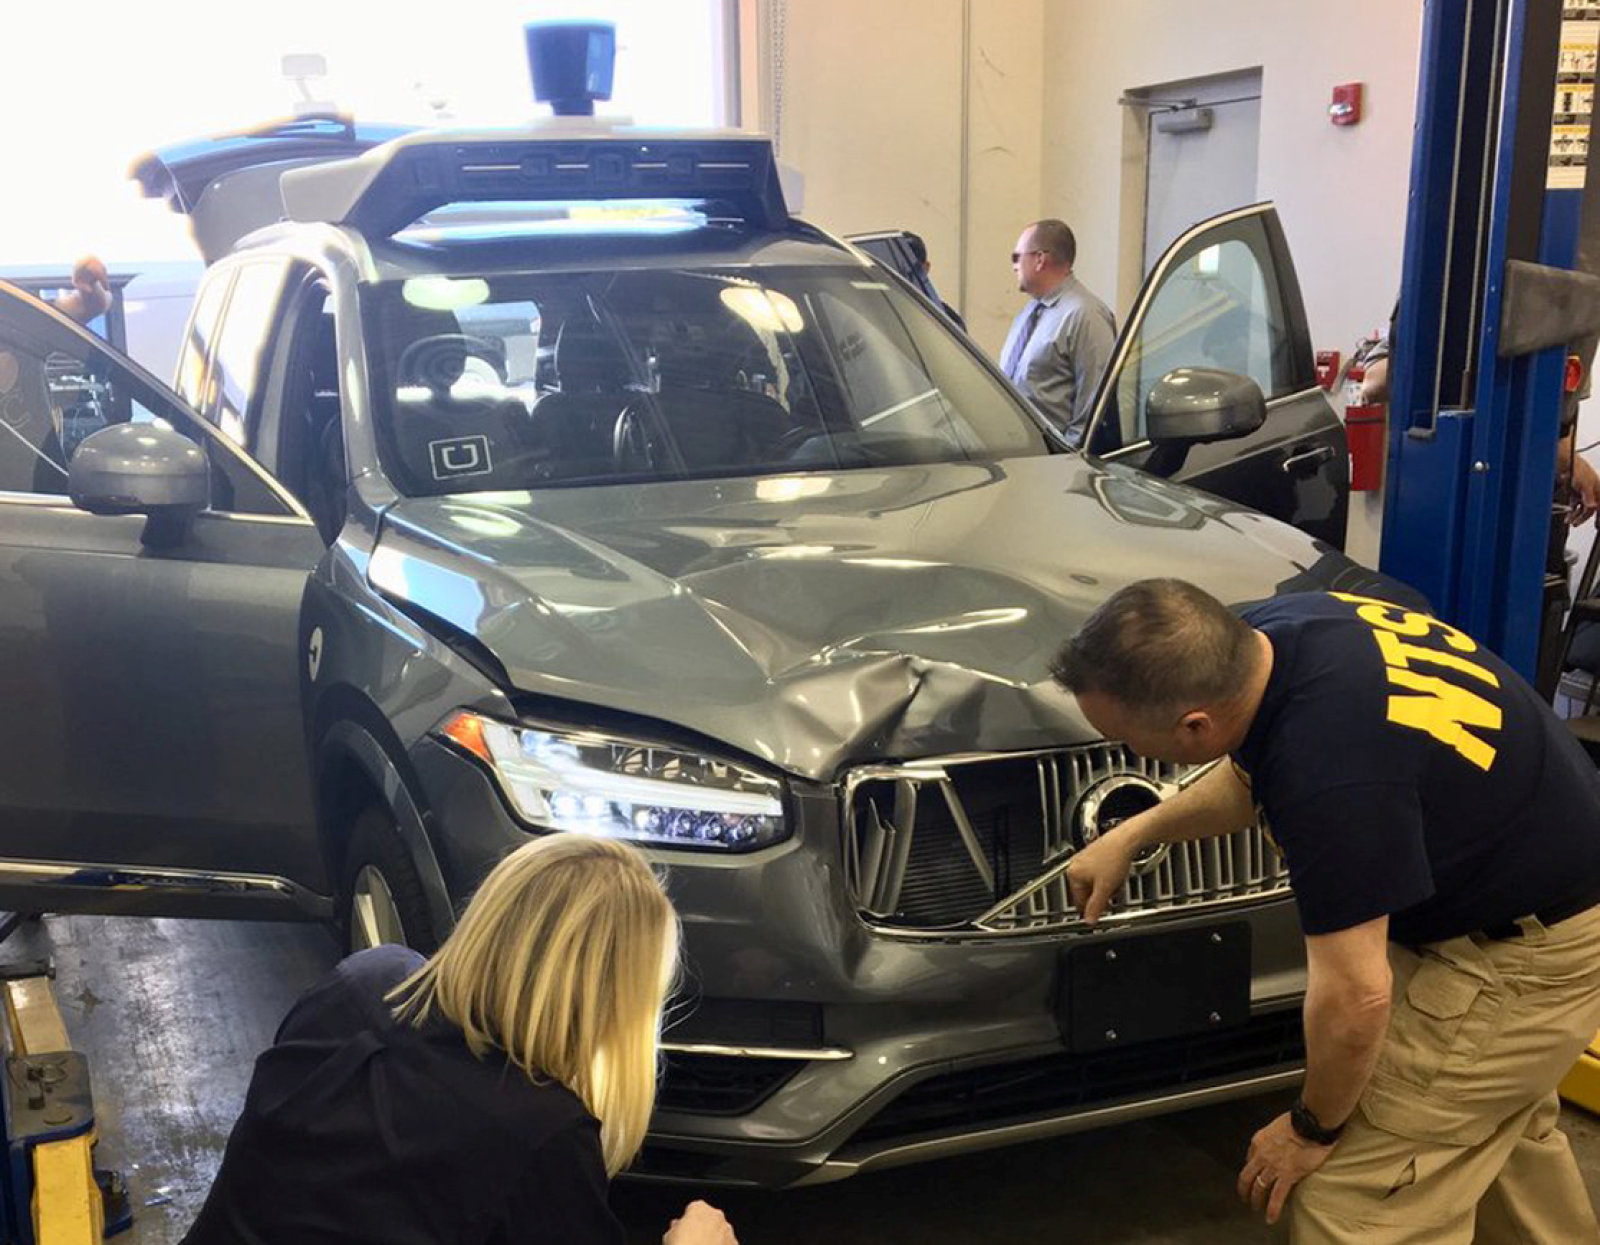 National Transportation Safety Board (NTSB) investigators examine a self-driving Uber vehicle involved in a fatal accident in Tempe, Arizona, U.S., March 20, 2018.  A women was struck and killed by the vehicle on March 18, 2018.  National Transportation Safety Board/Handout via REUTERS   ATTENTION EDITORS - THIS IMAGE WAS PROVIDED BY A THIRD PARTY.